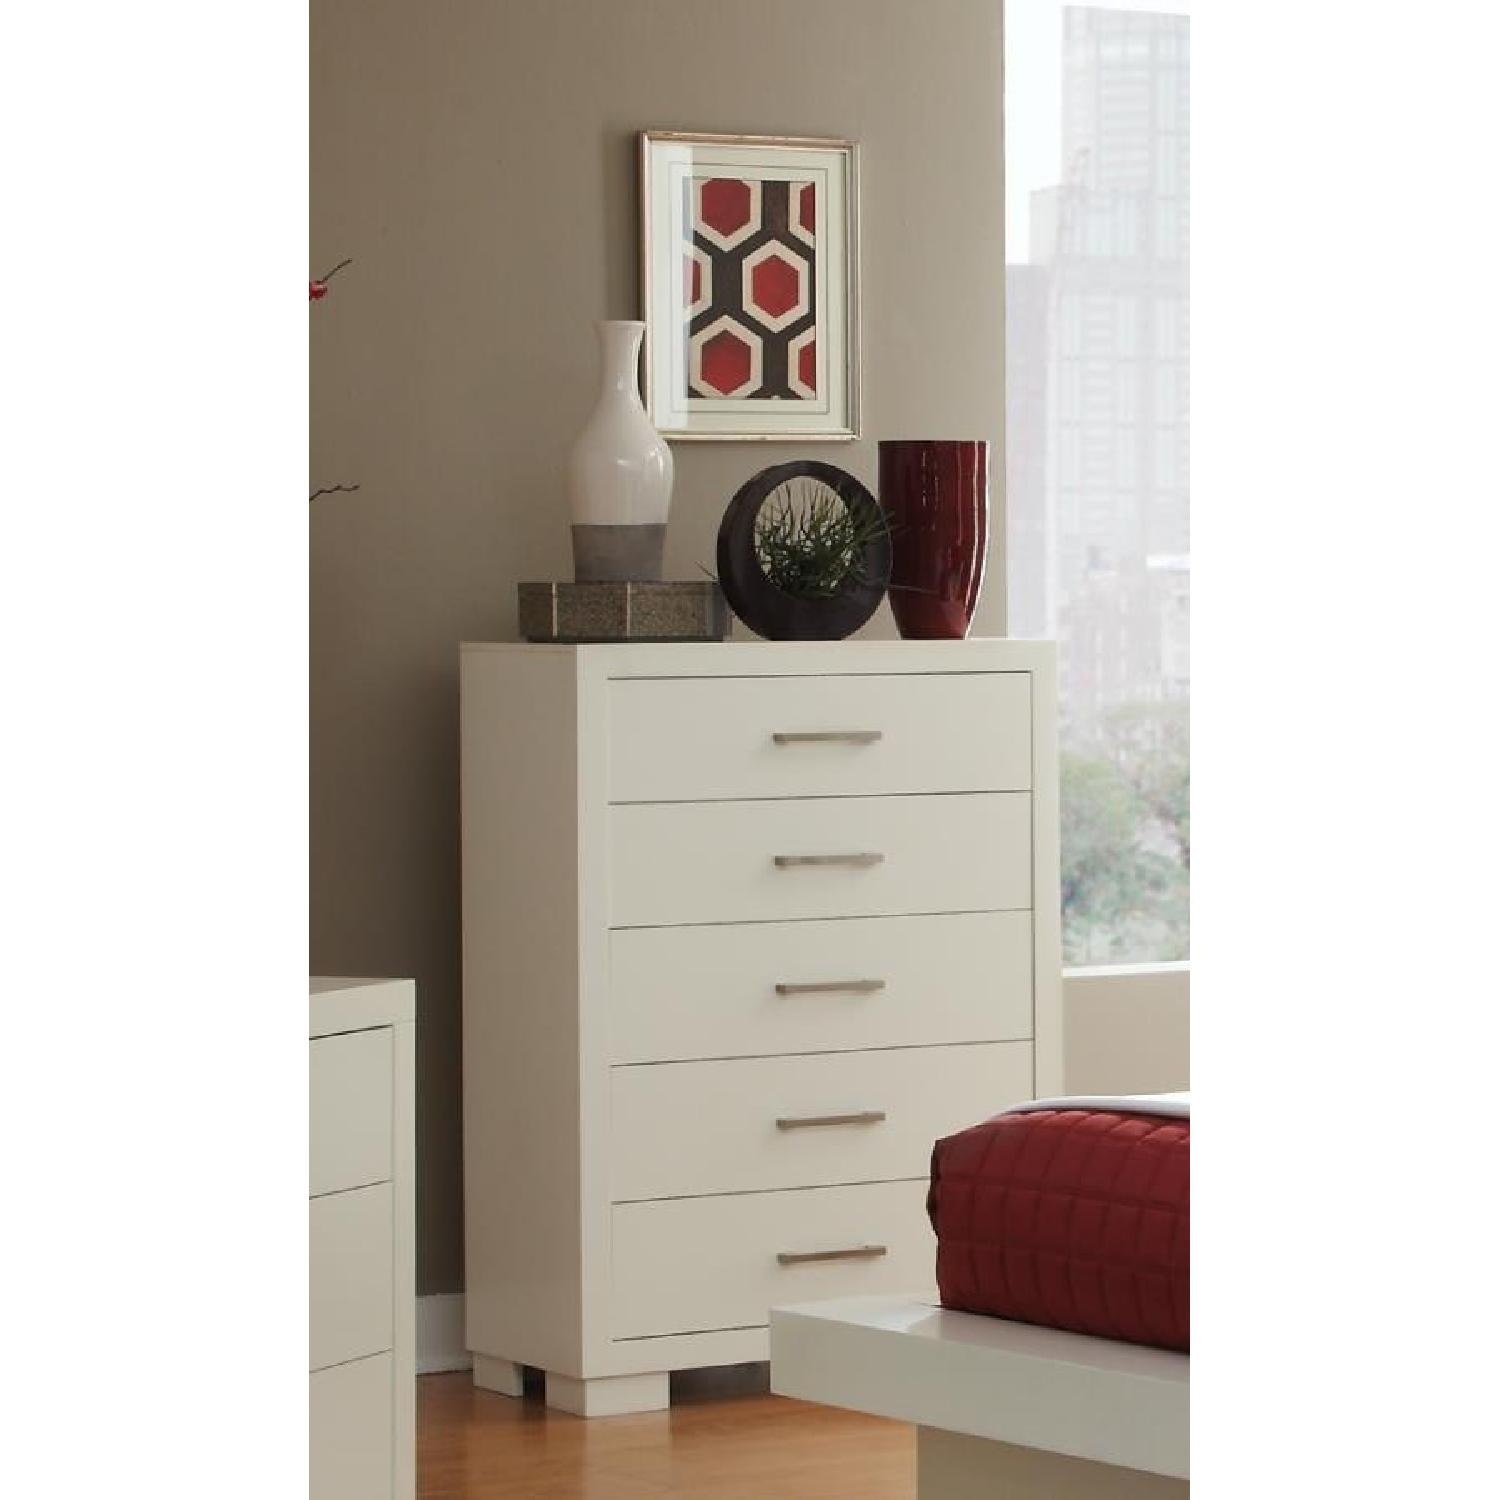 Modern 5-Drawer Solid Wood Chest w/ Dove-Tail & Full Extension Drawers in White Finish - image-1